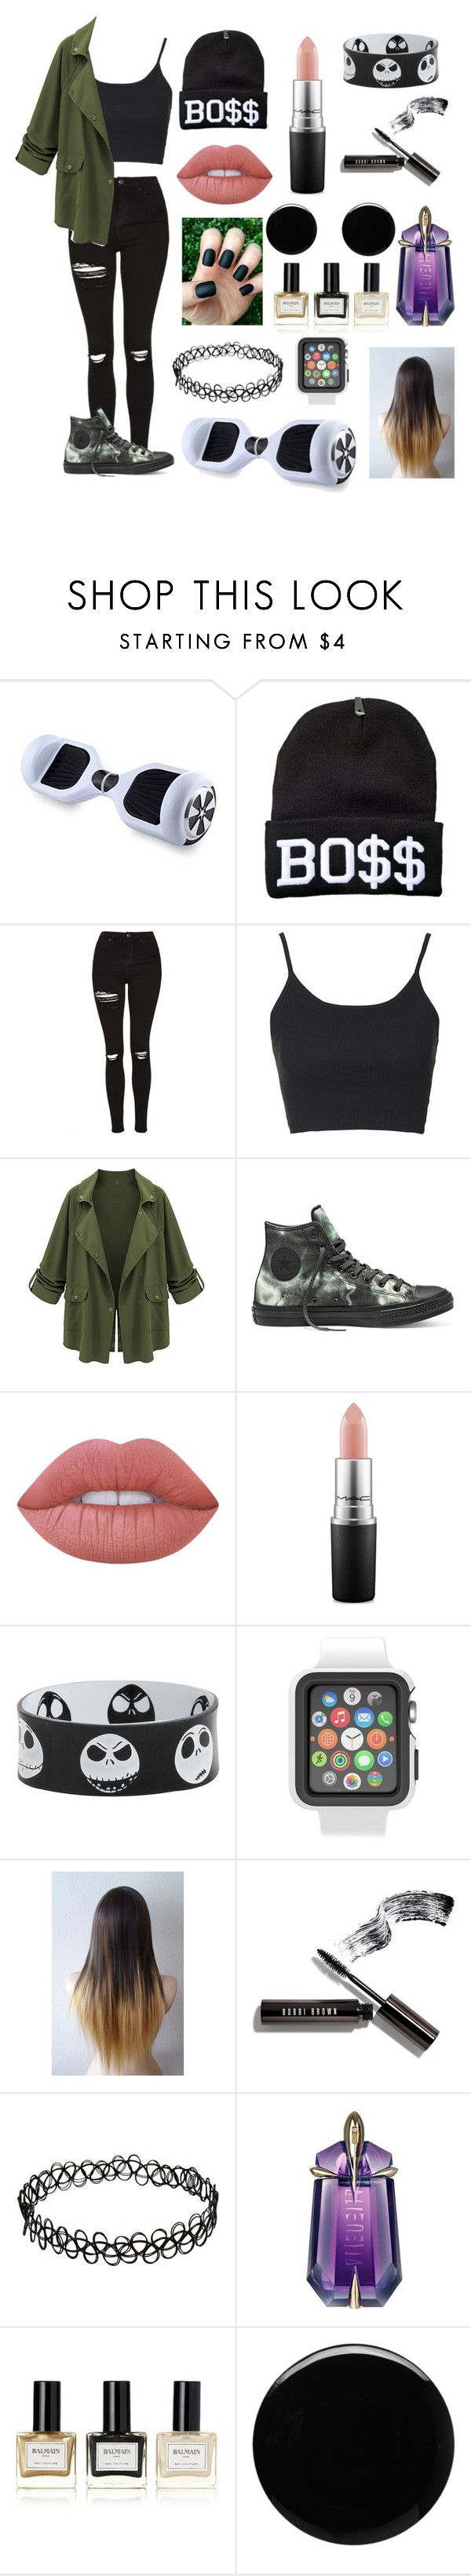 """Sophiek82"" by candyfrost on Polyvore featuring Topshop, Converse, Lime Crime, MAC Cosmetics, Speck, Bobbi Brown Cosmetics, Thierry Mugler, Balmain and Deborah Lippmann"